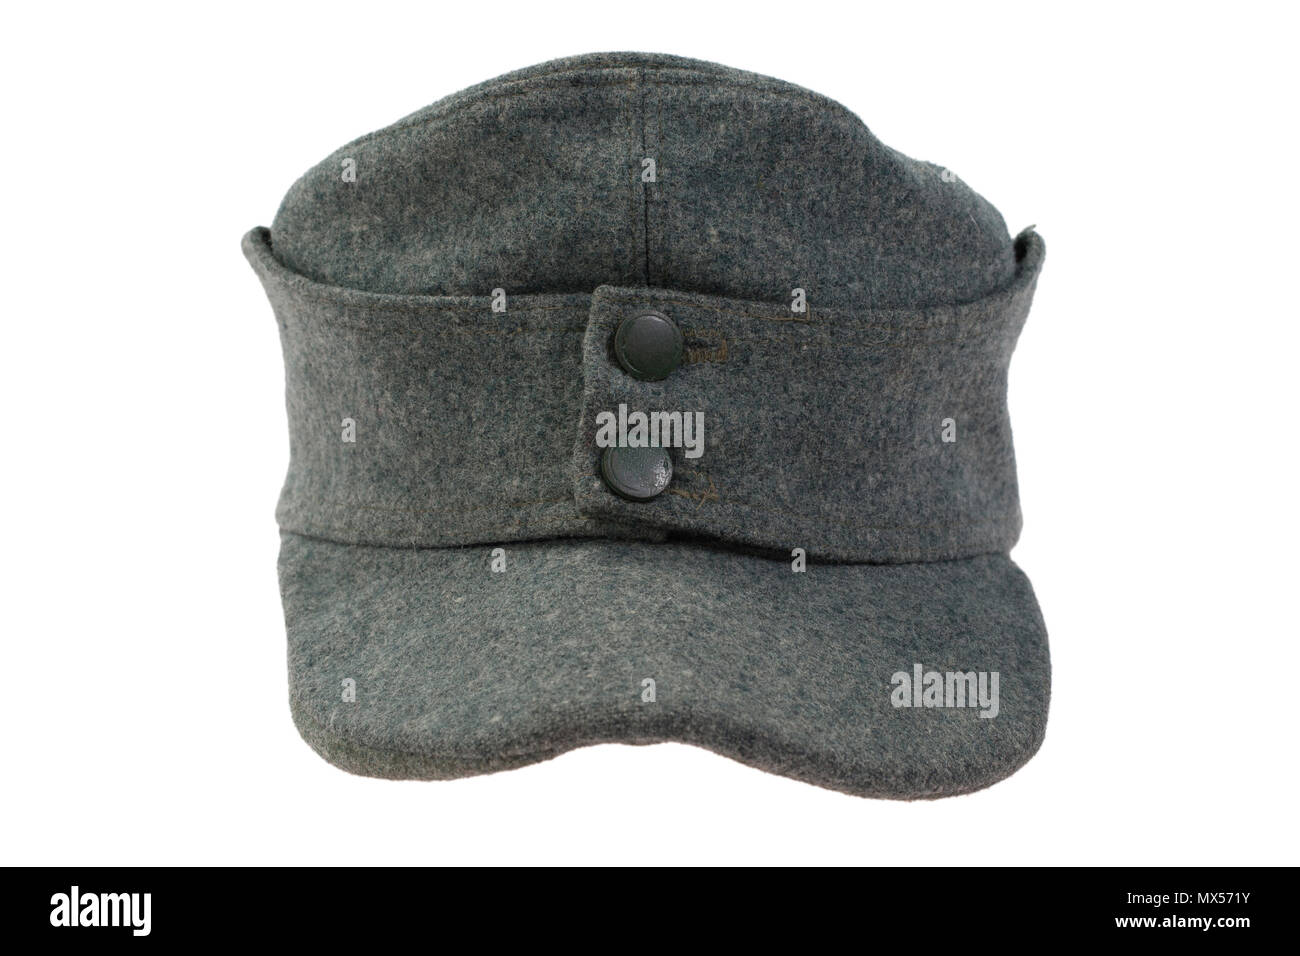 655793cd8576f German Army cap World War II period isolated on a white background - Stock  Image